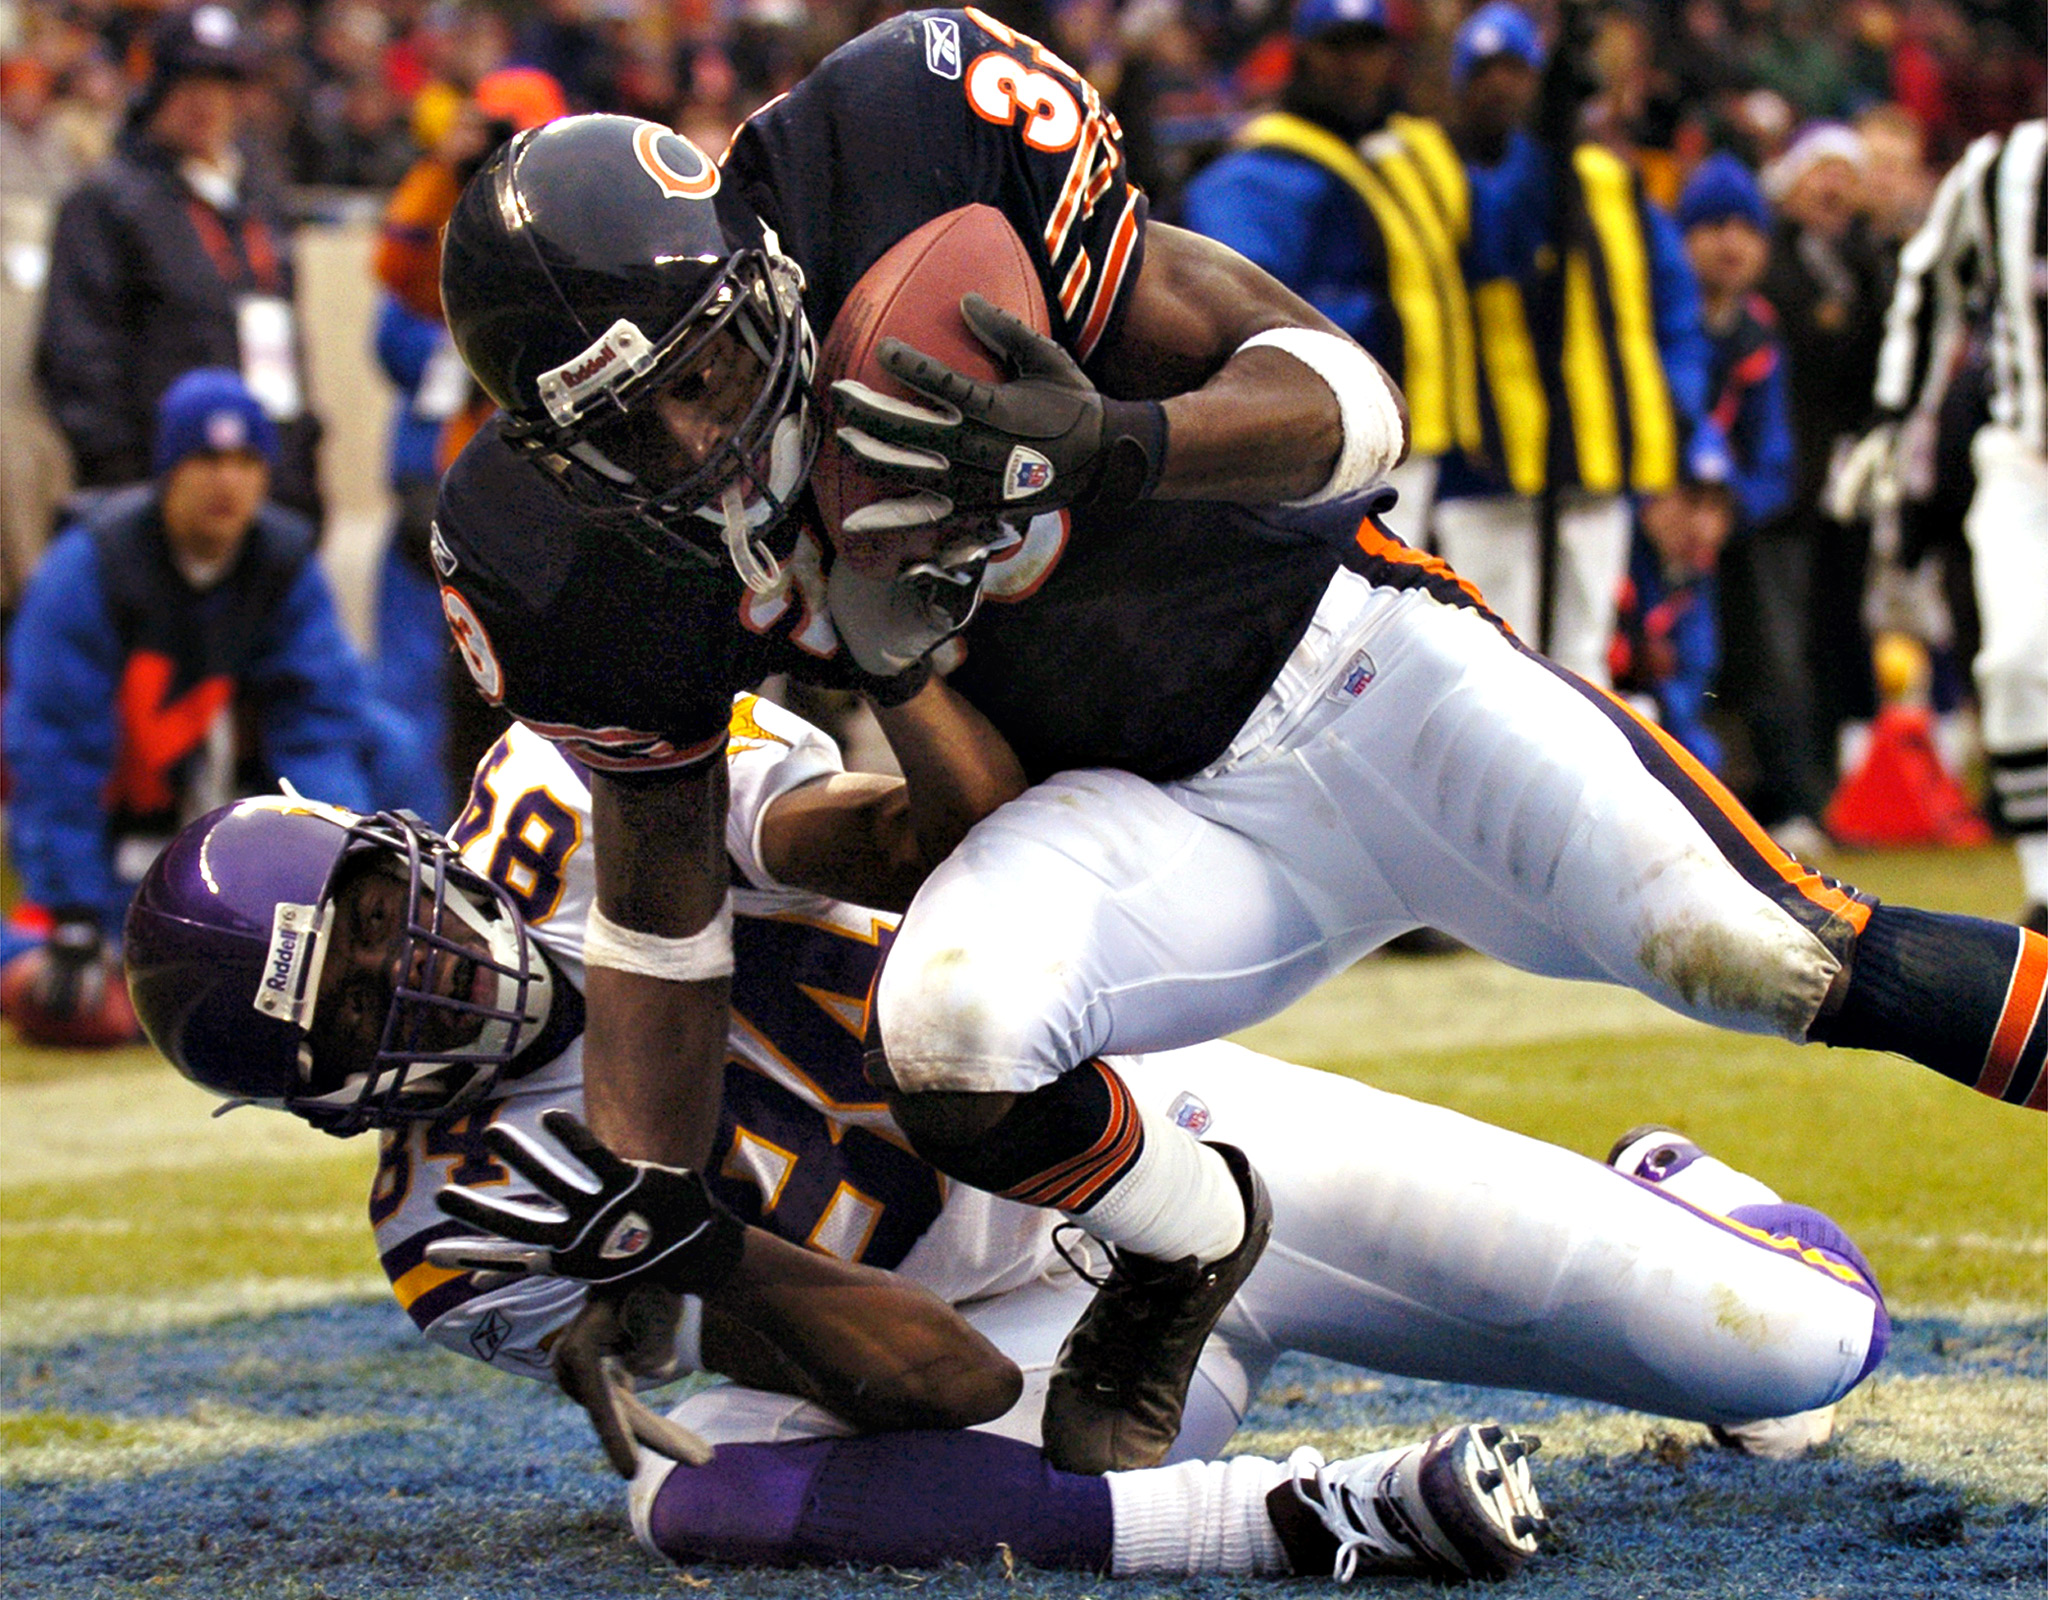 December 14, 2003 - Tillman vs Randy Moss